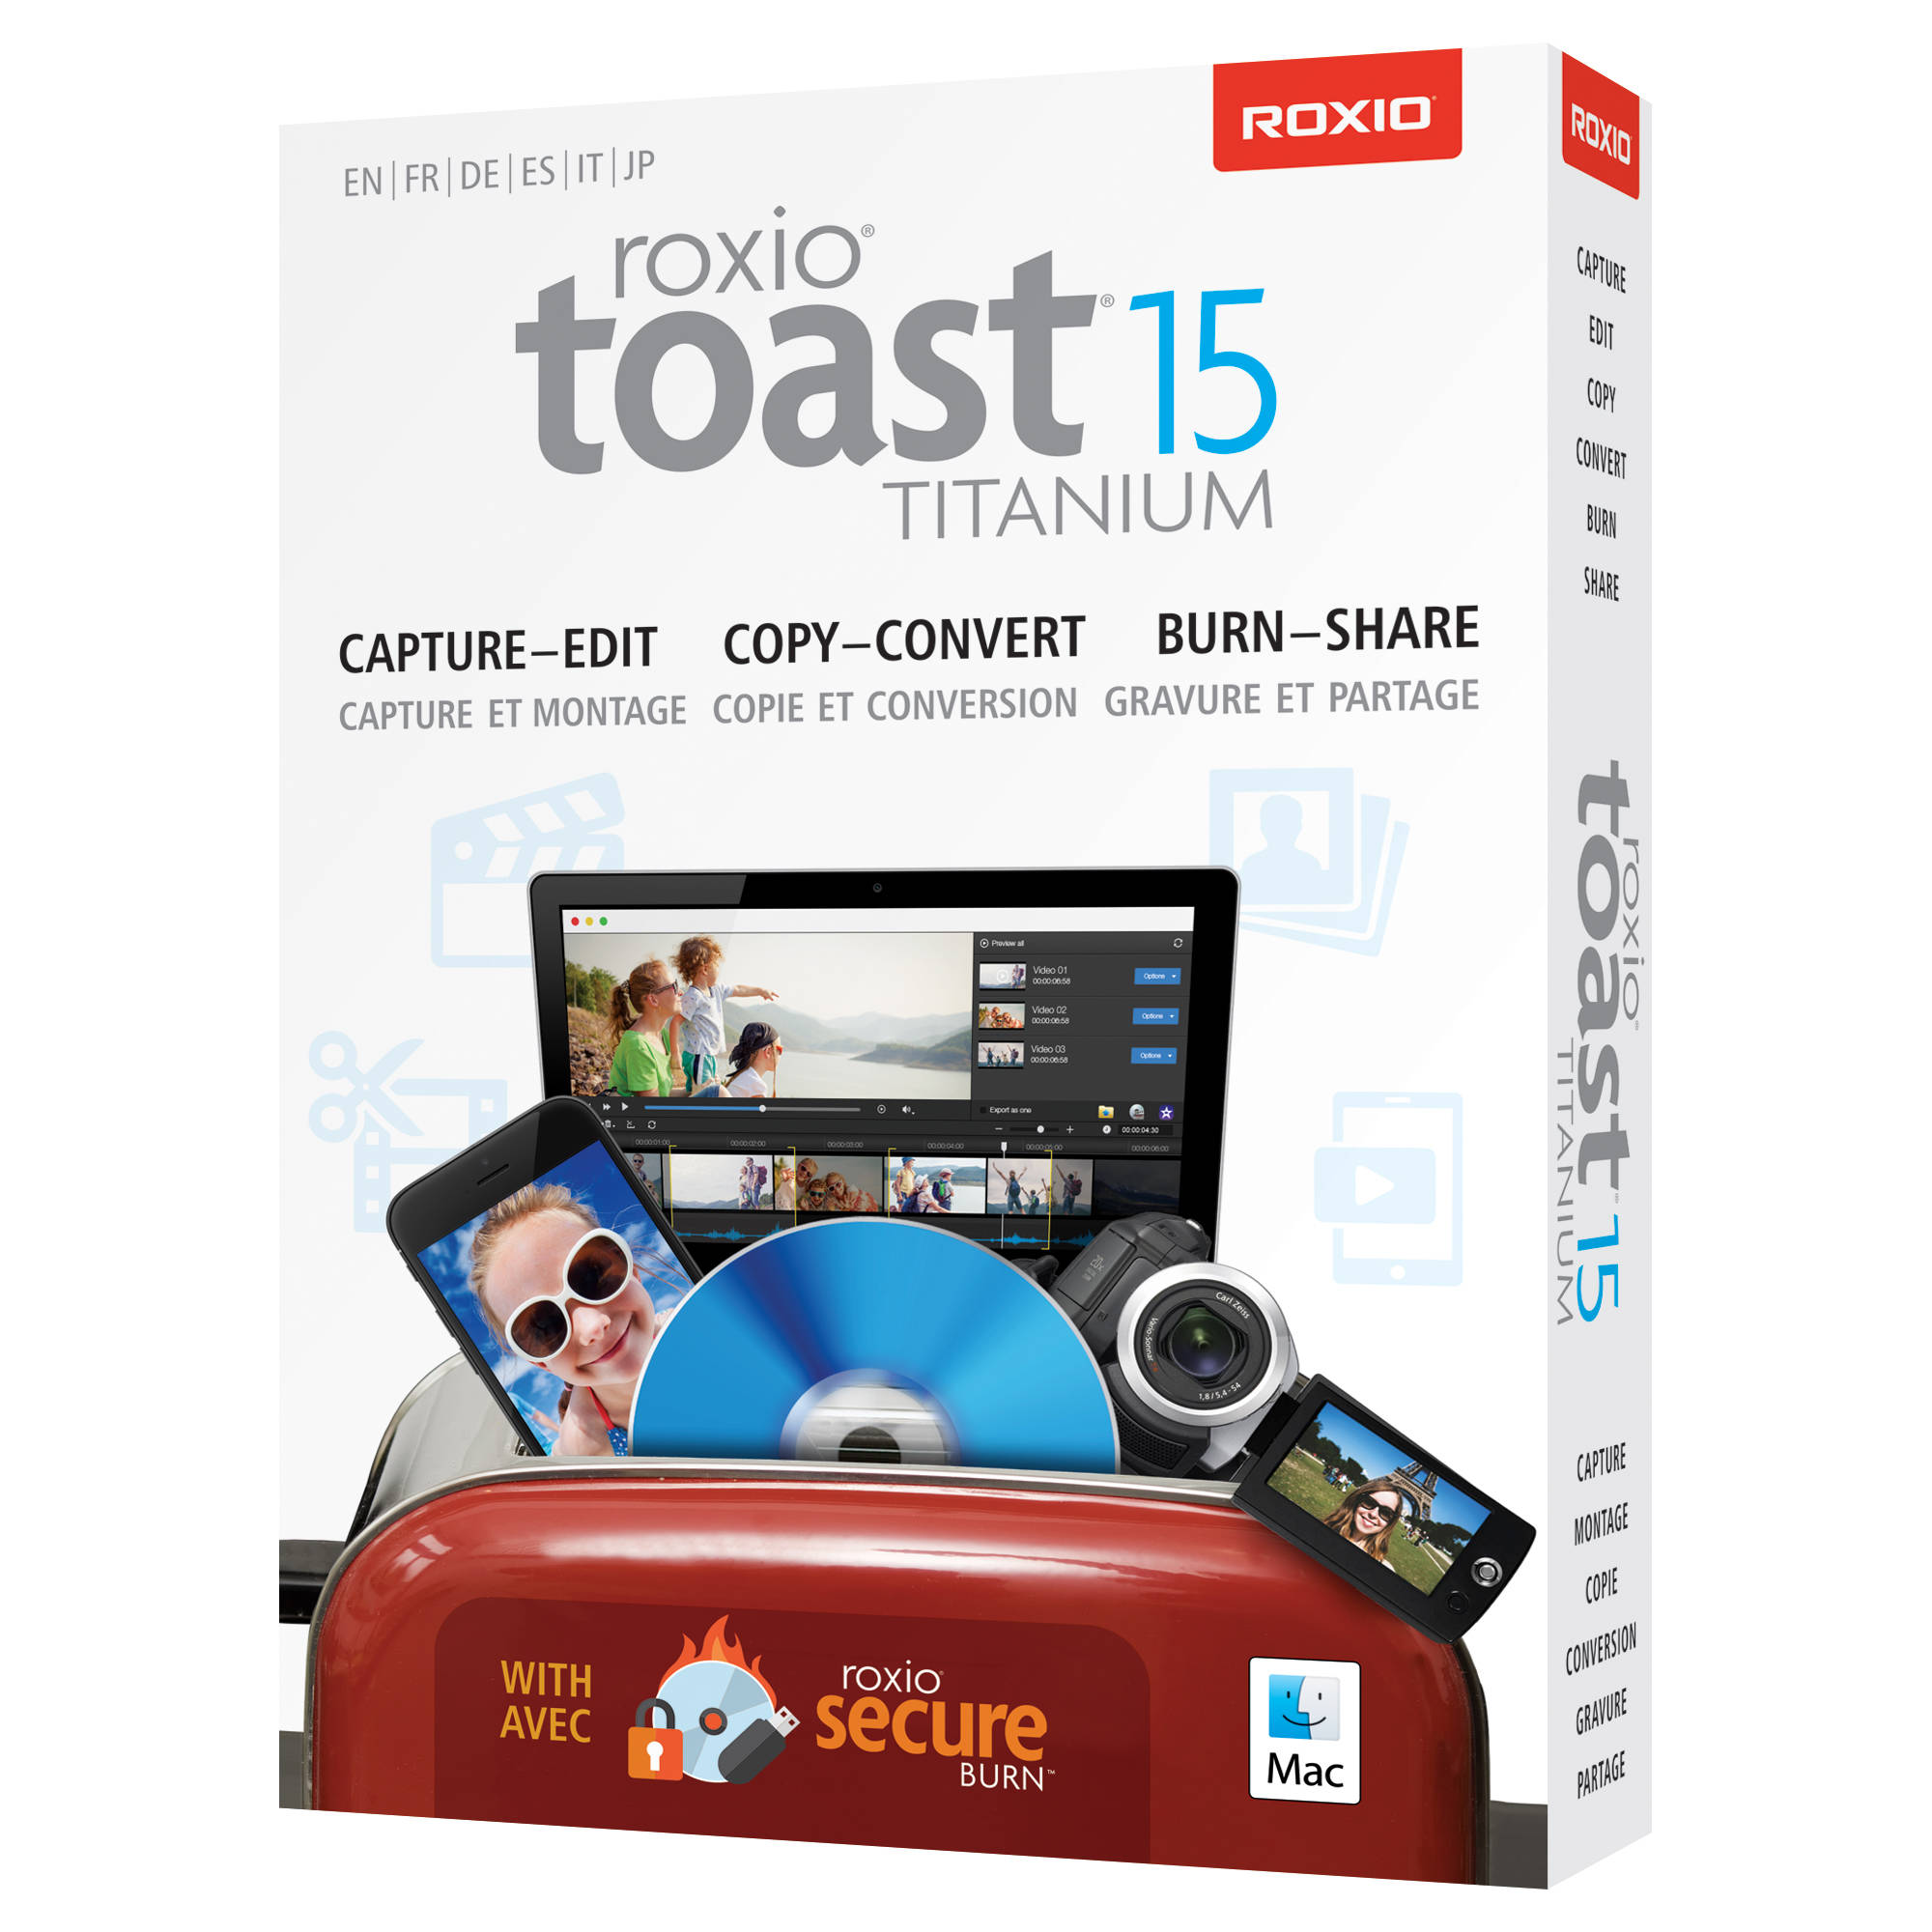 Unlock your burning and digital media possibilities with Toast Titanium